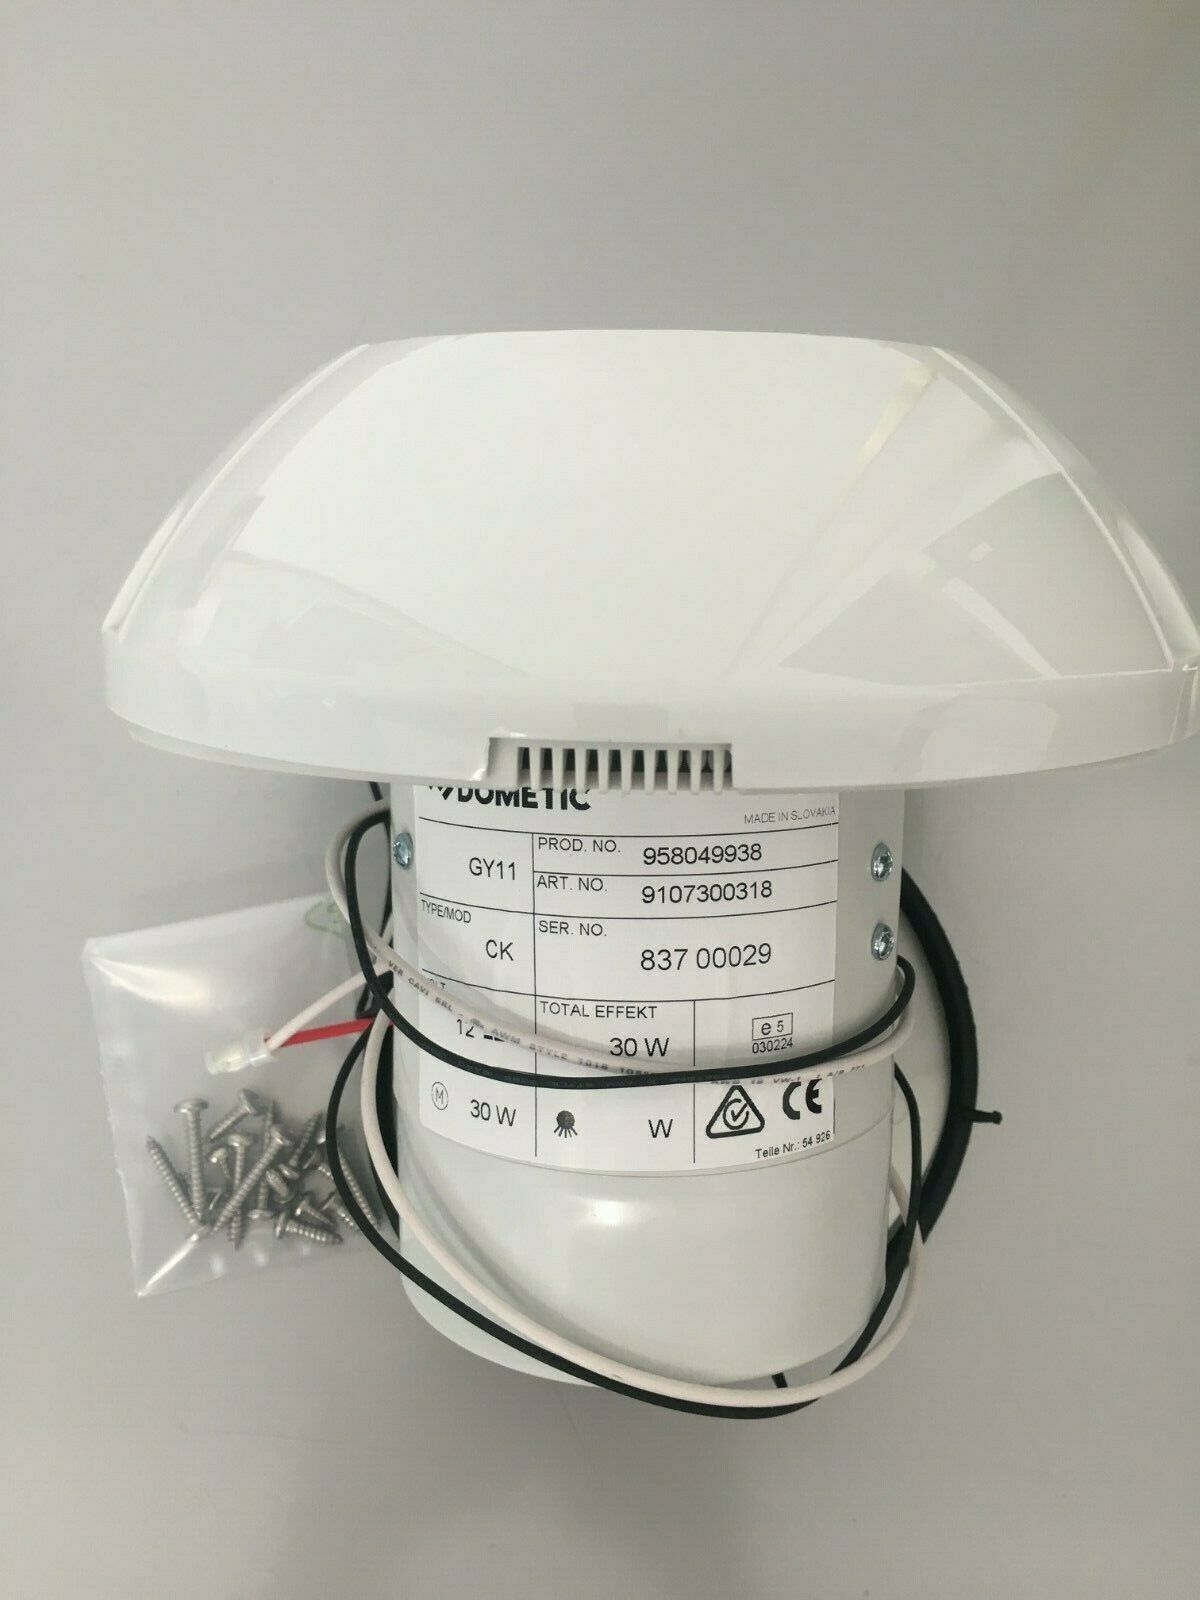 Dometic 12 Volt Roof Ventilation Gy11 12v Extractor Hood